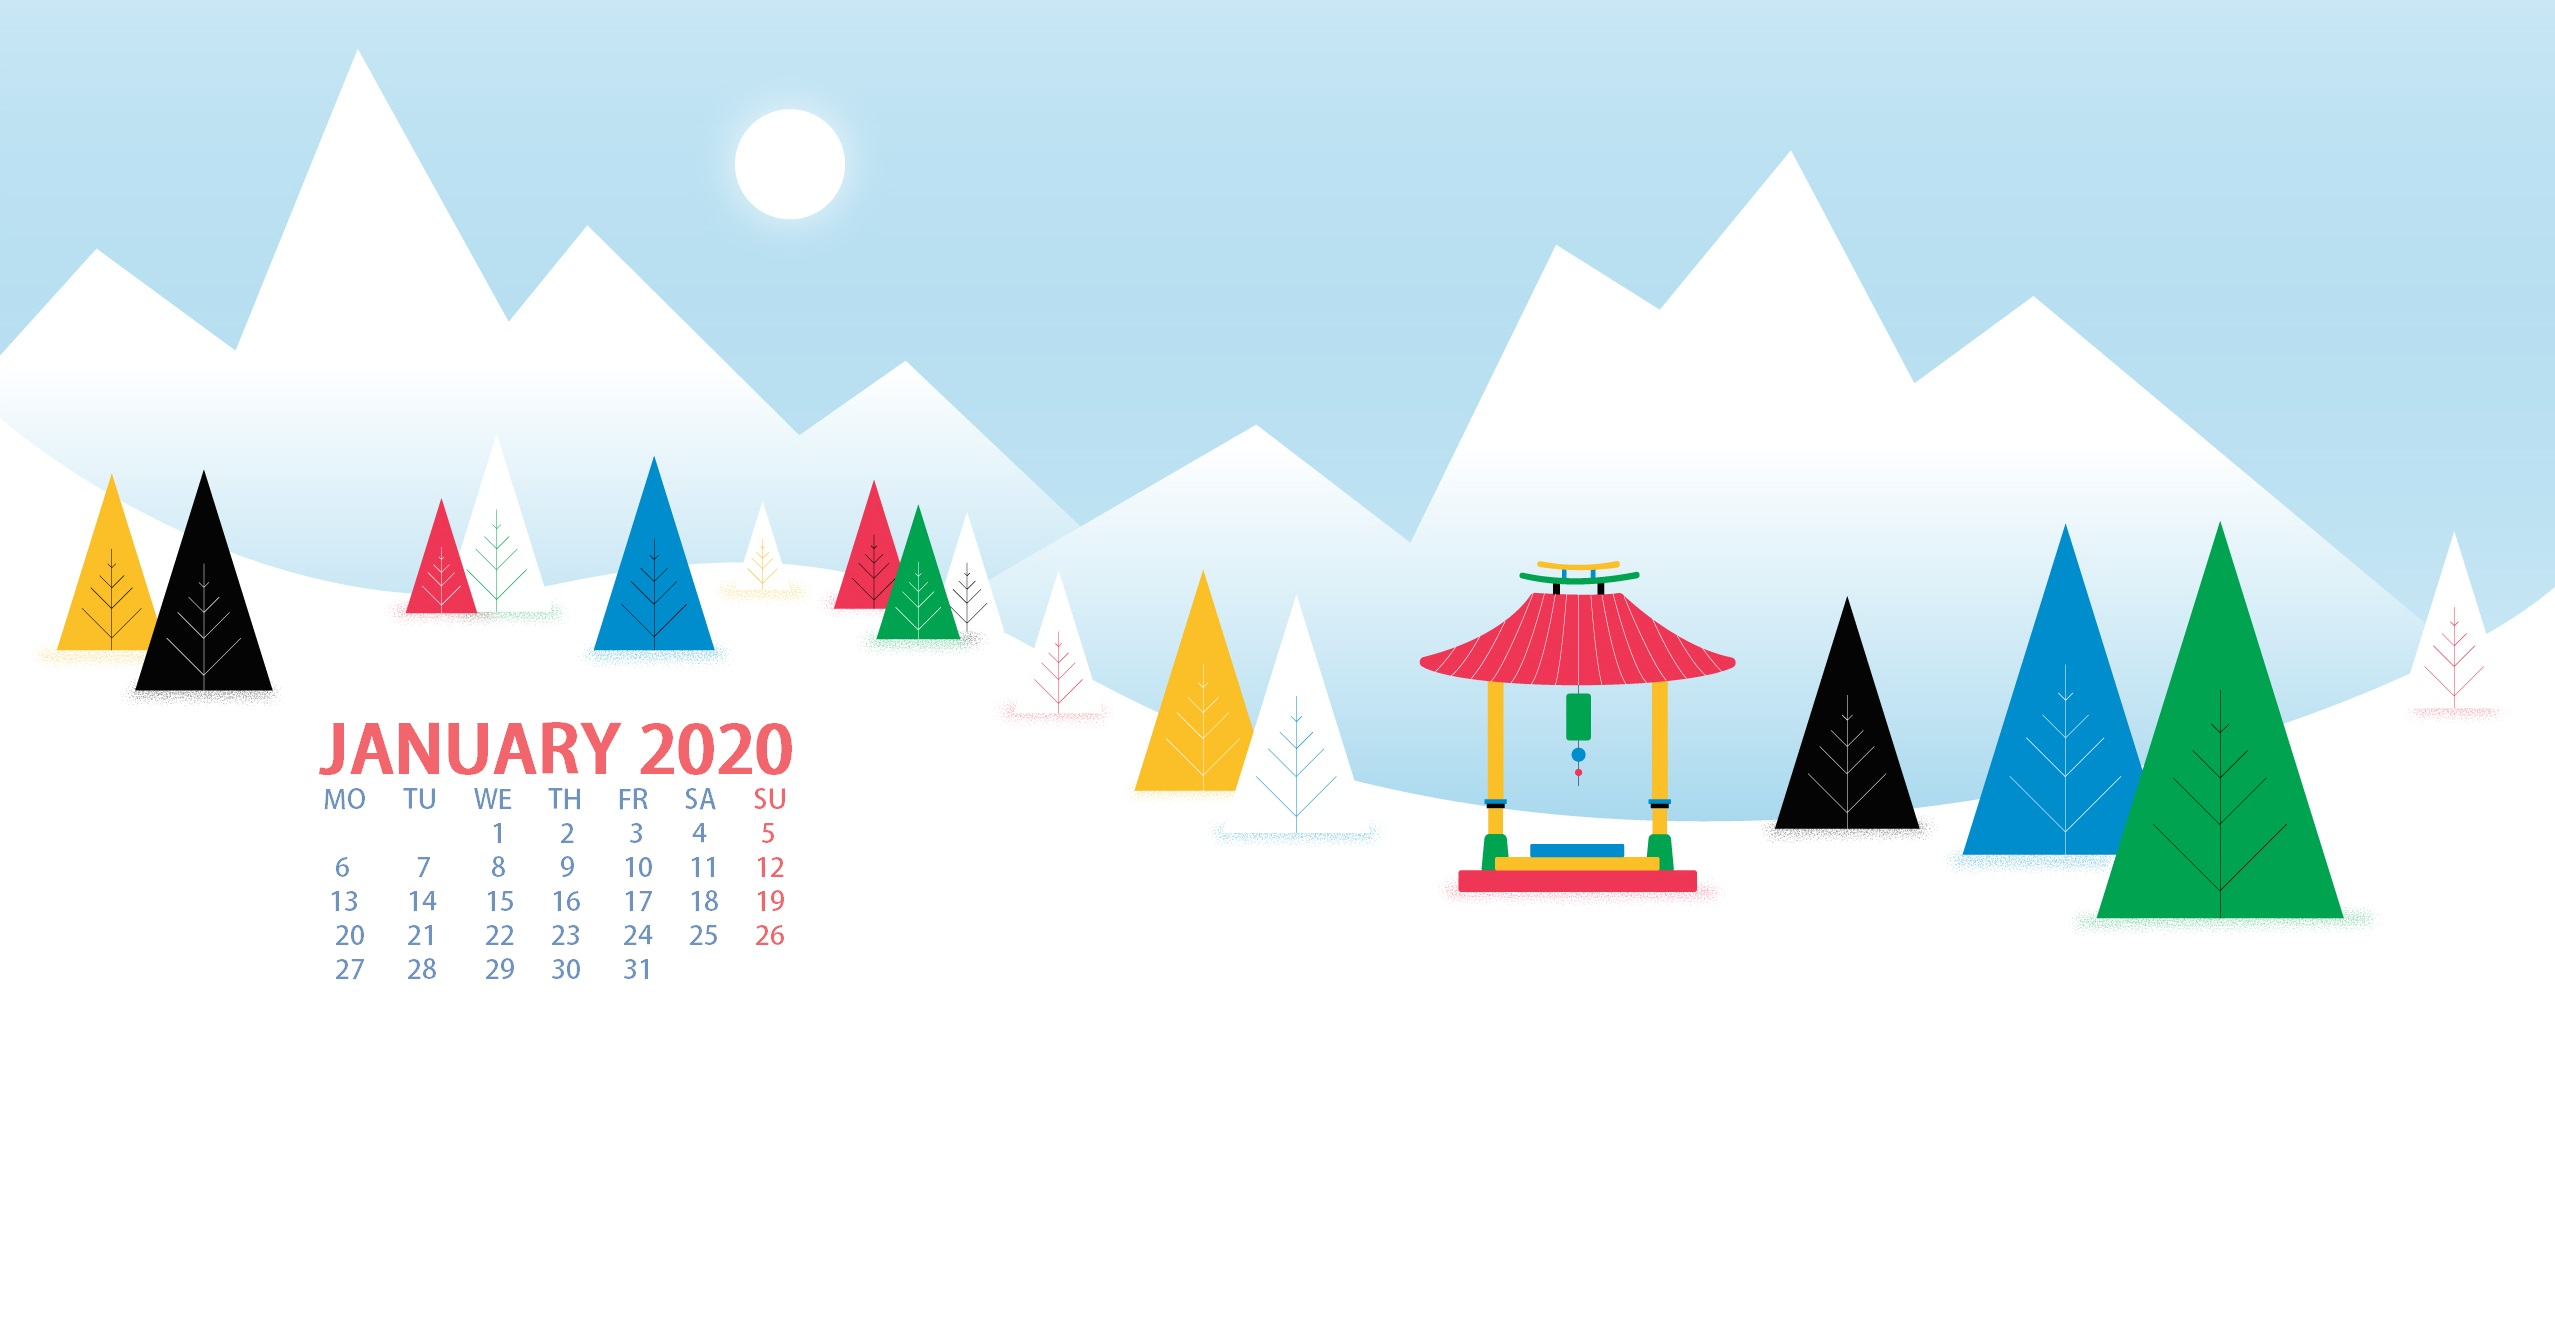 January 2020 Desktop Calendar Wallpaper Max Calendars 2555x1337